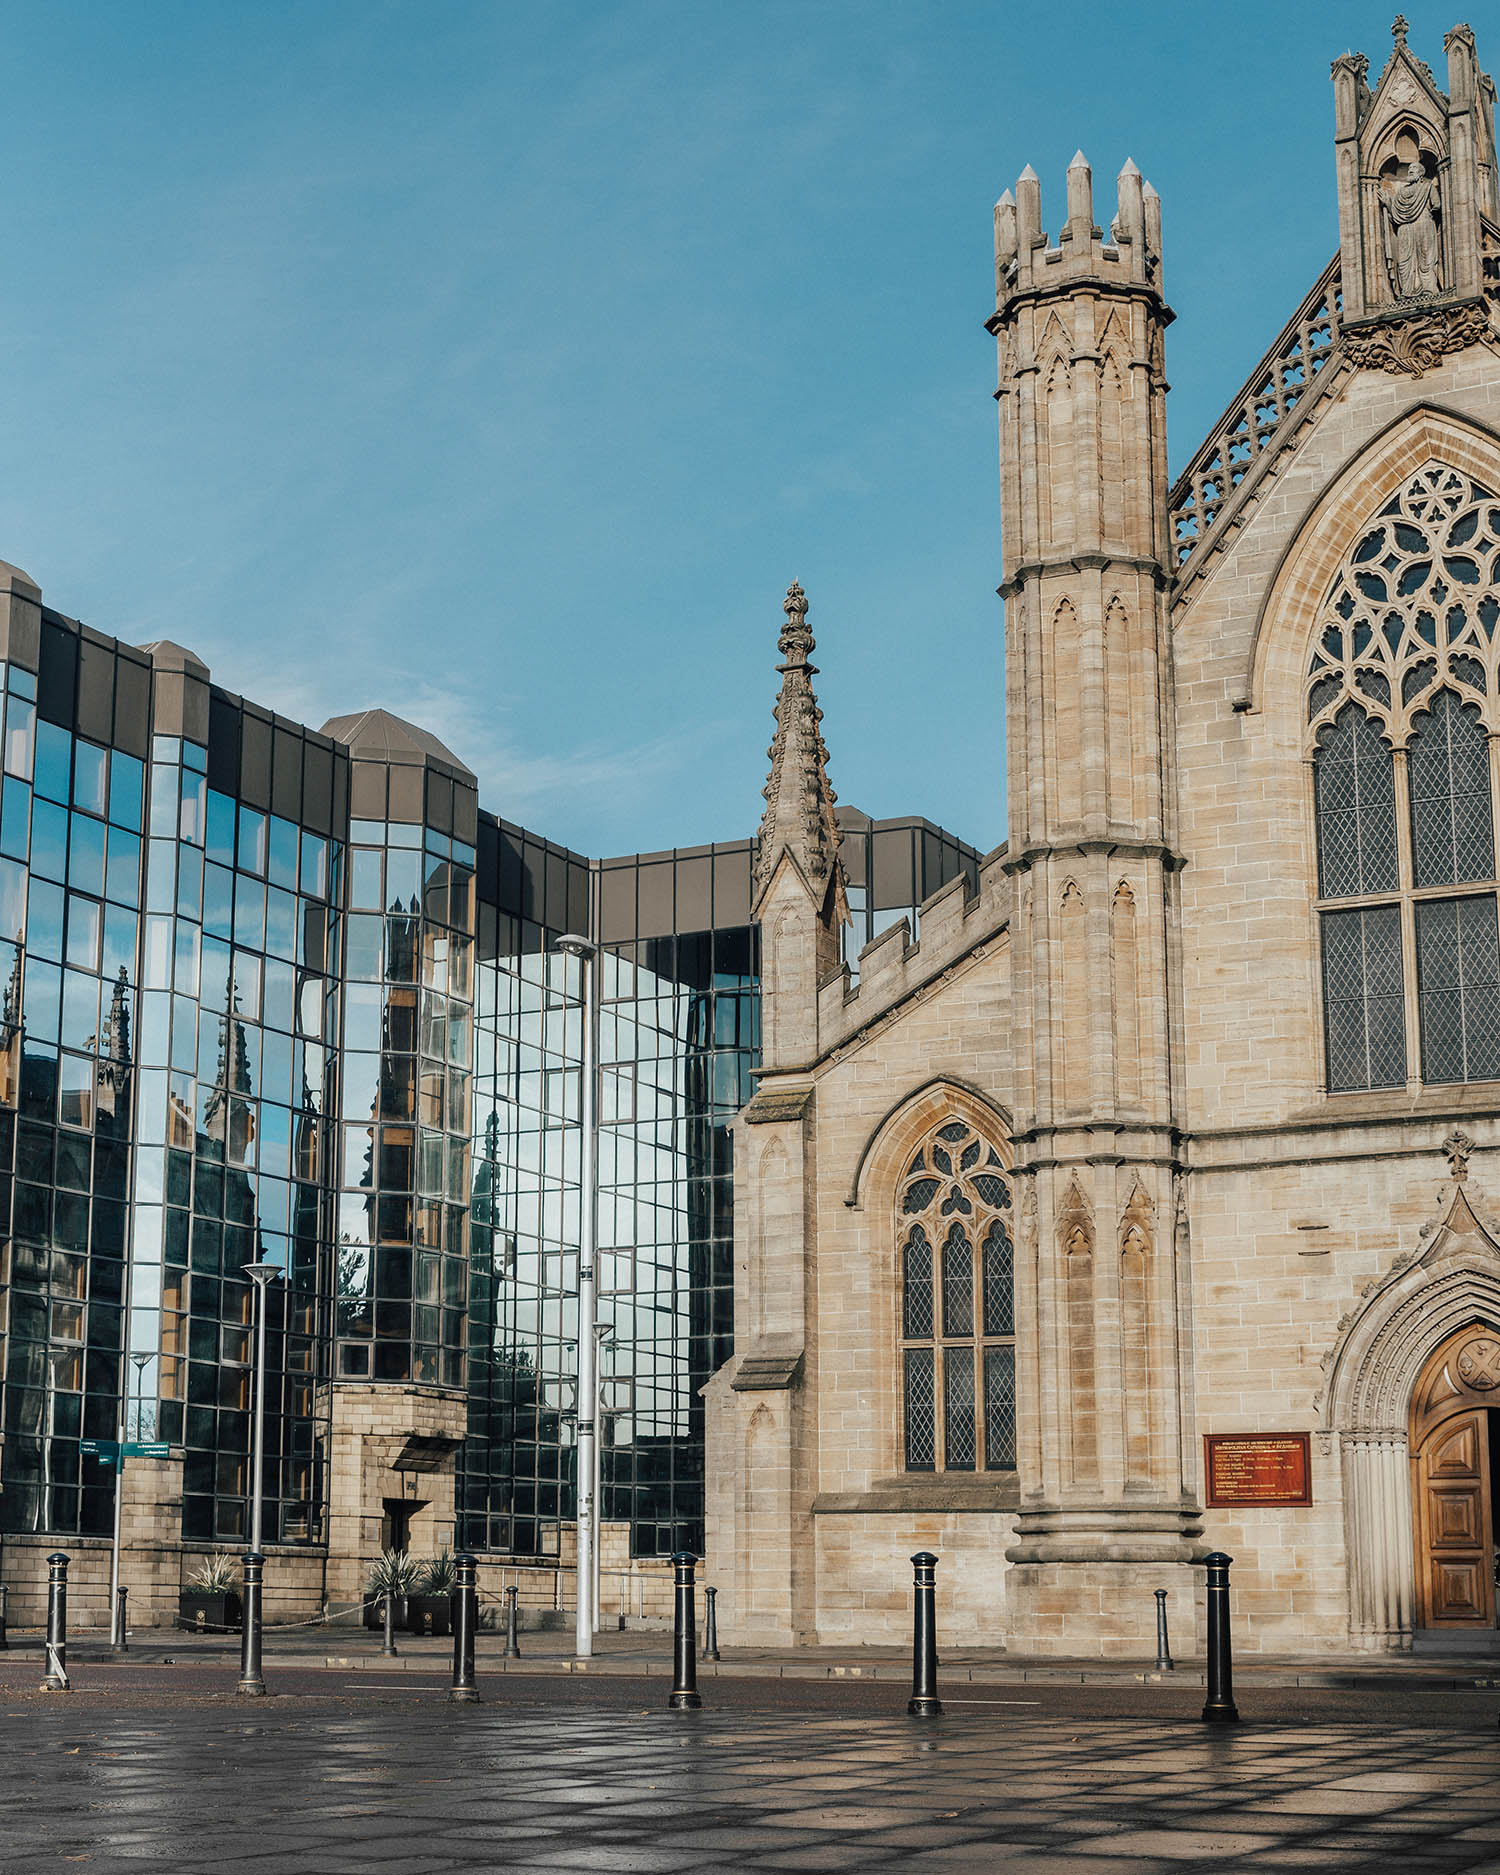 Glasgow Catholic Cathedral - New & Old Architecture next to each other